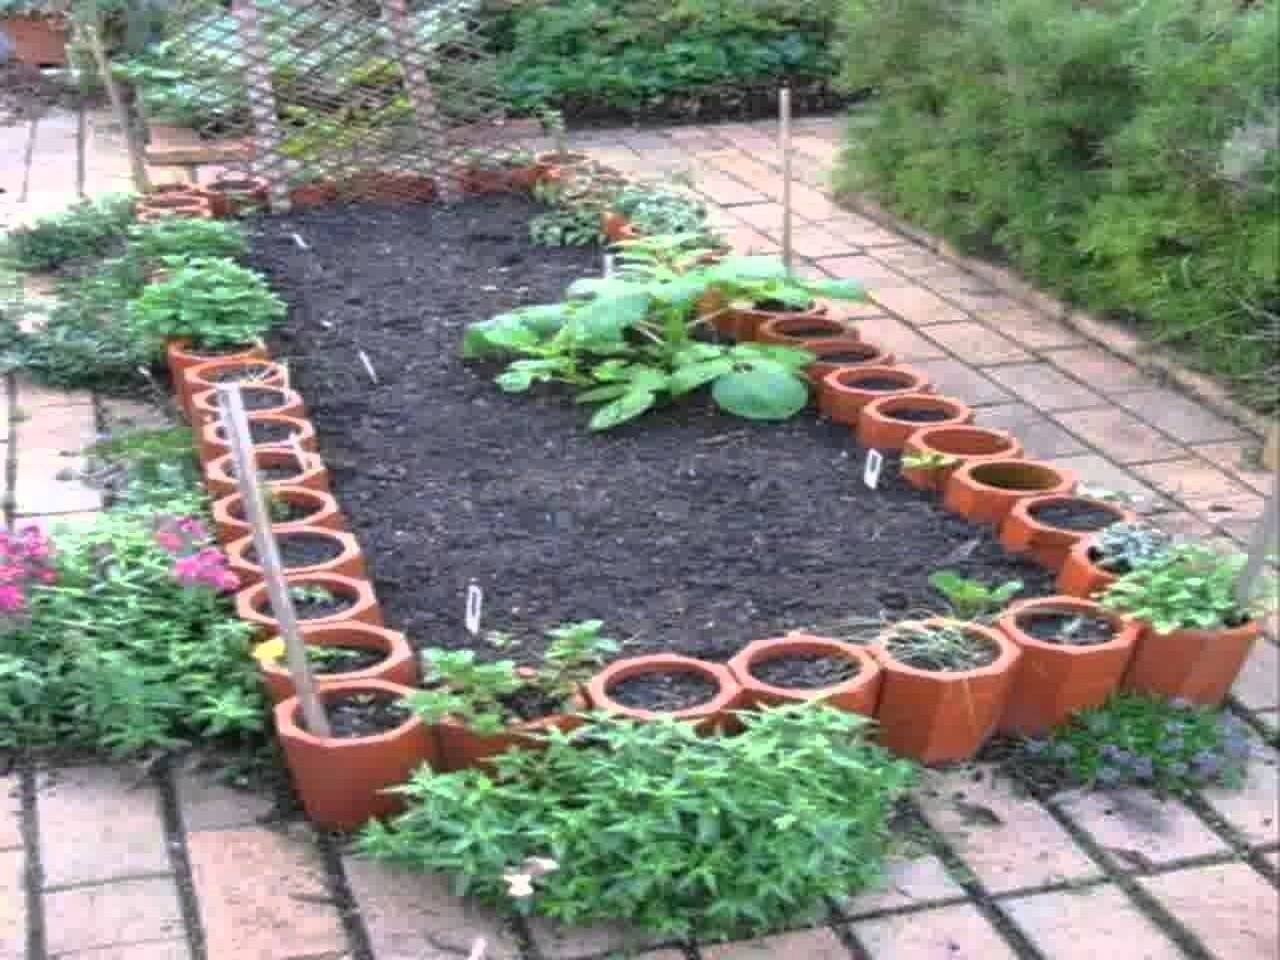 10 Pretty Vegetable Garden Ideas For Small Spaces small home vegetable garden ideas youtube 2020